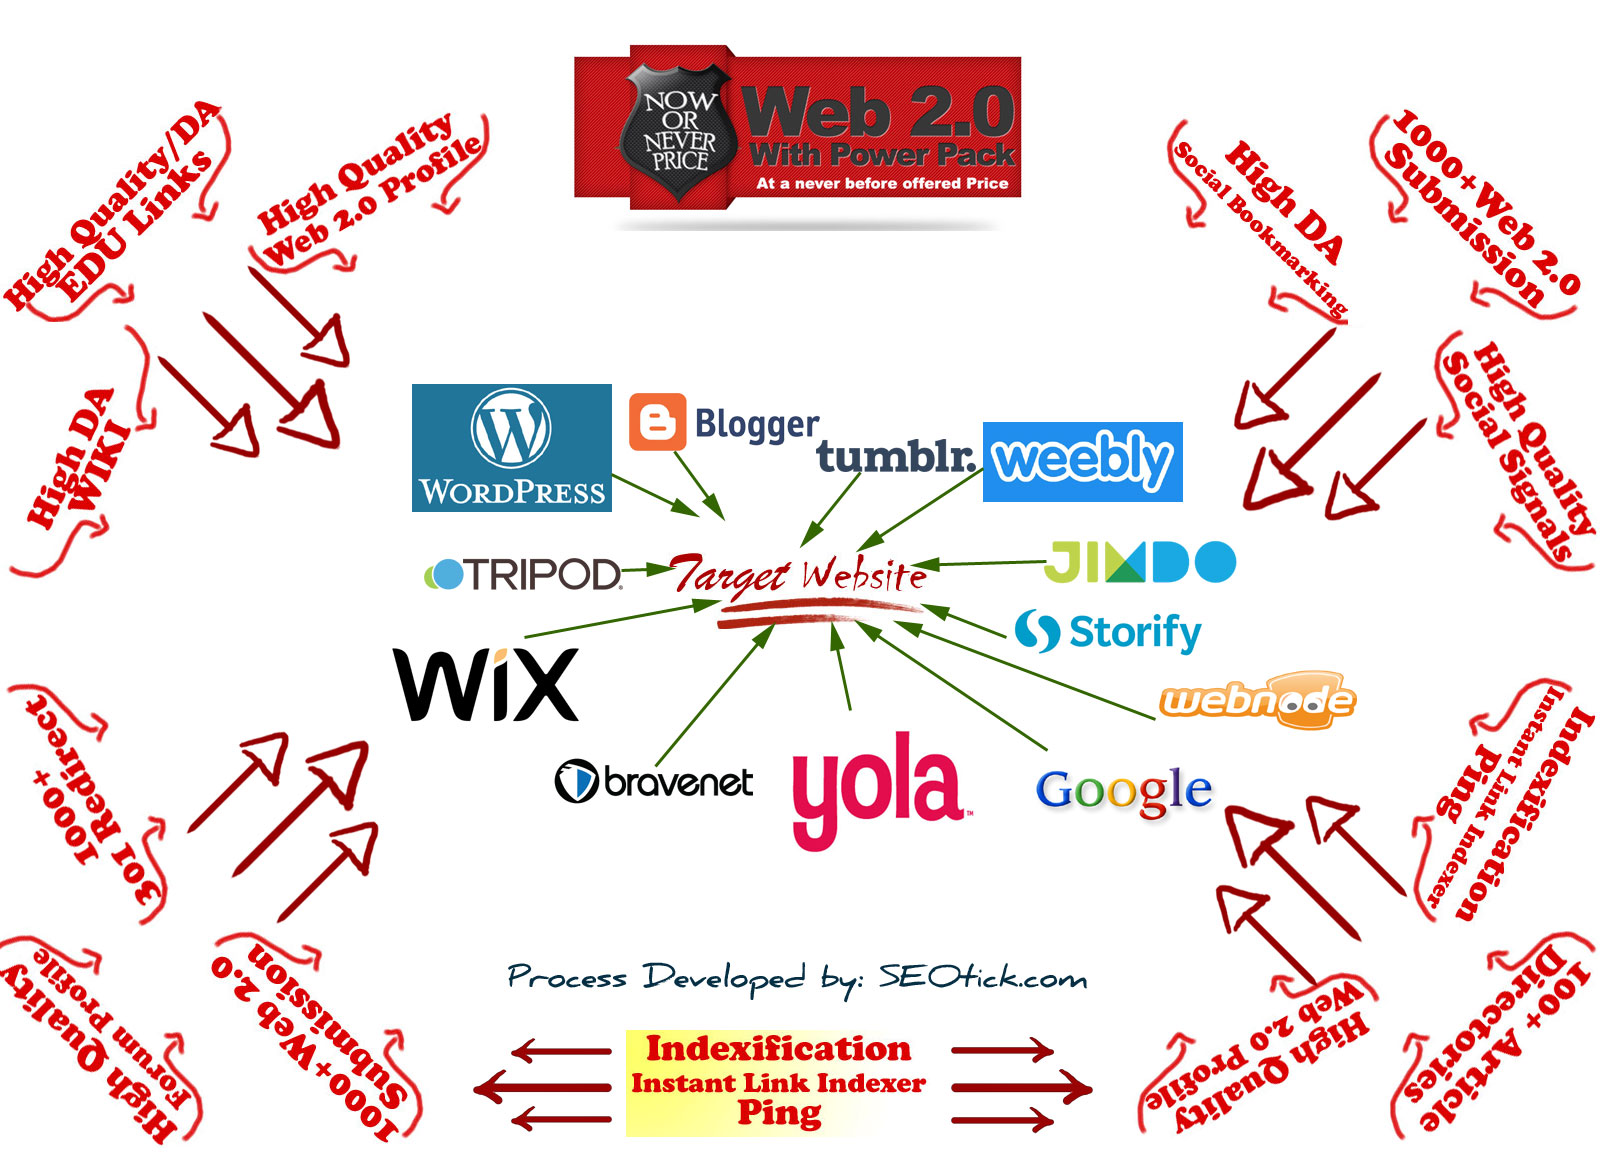 Manual Web 2.0 Creation_SEOtick